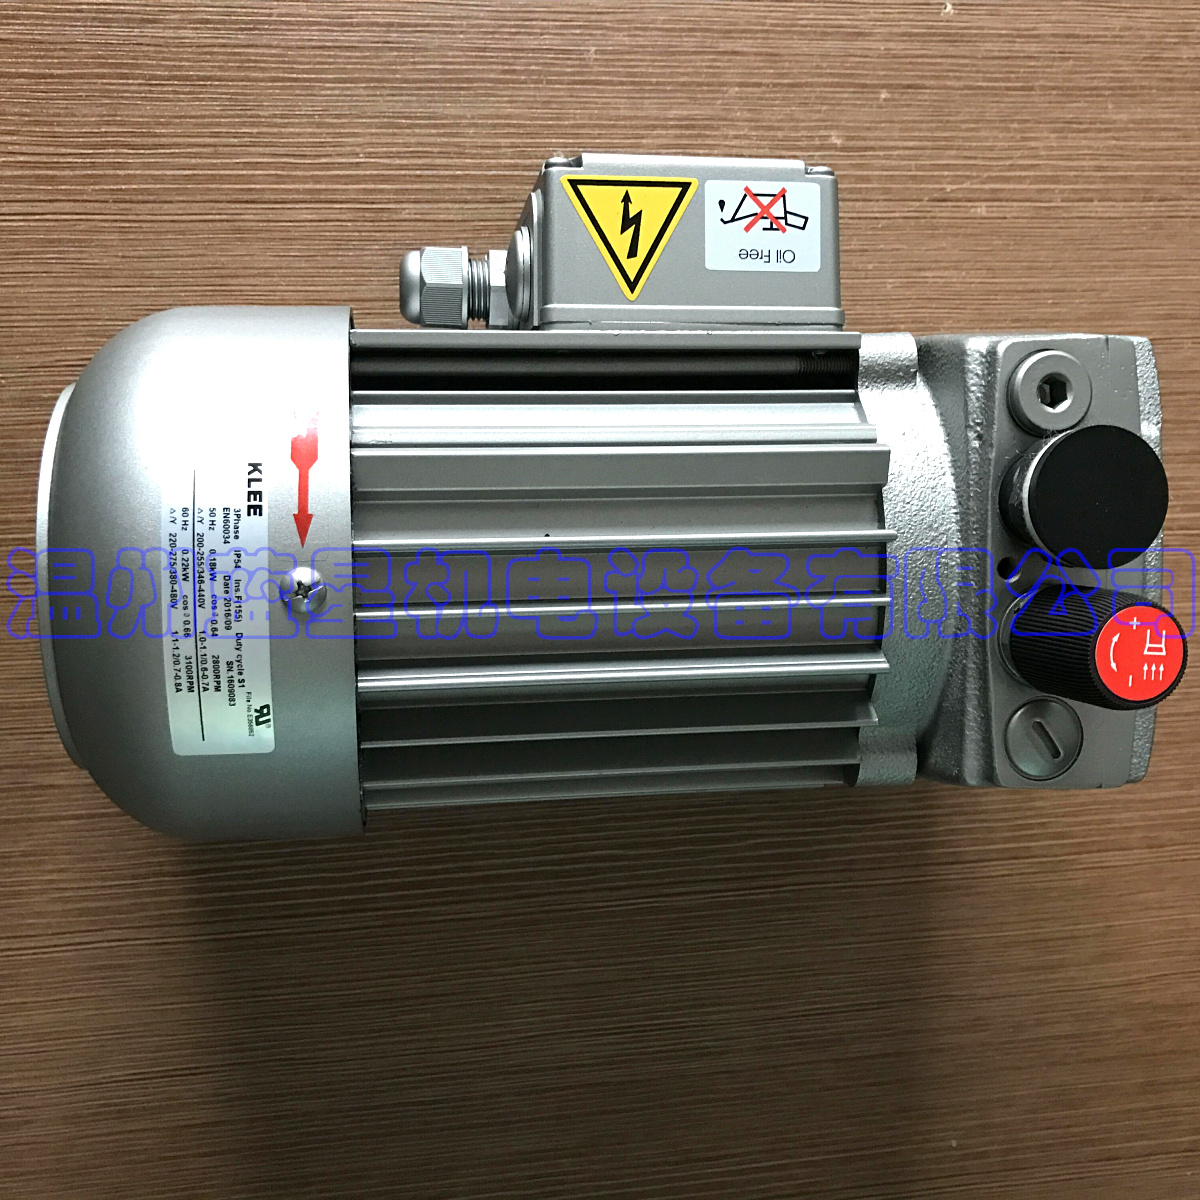 KLEE oil-free vacuum pump Kbv-404 can replace  VT4.4 Maximum flow: 4.1m3/h, max absolute vacuum 150mbar, voltage AC220V